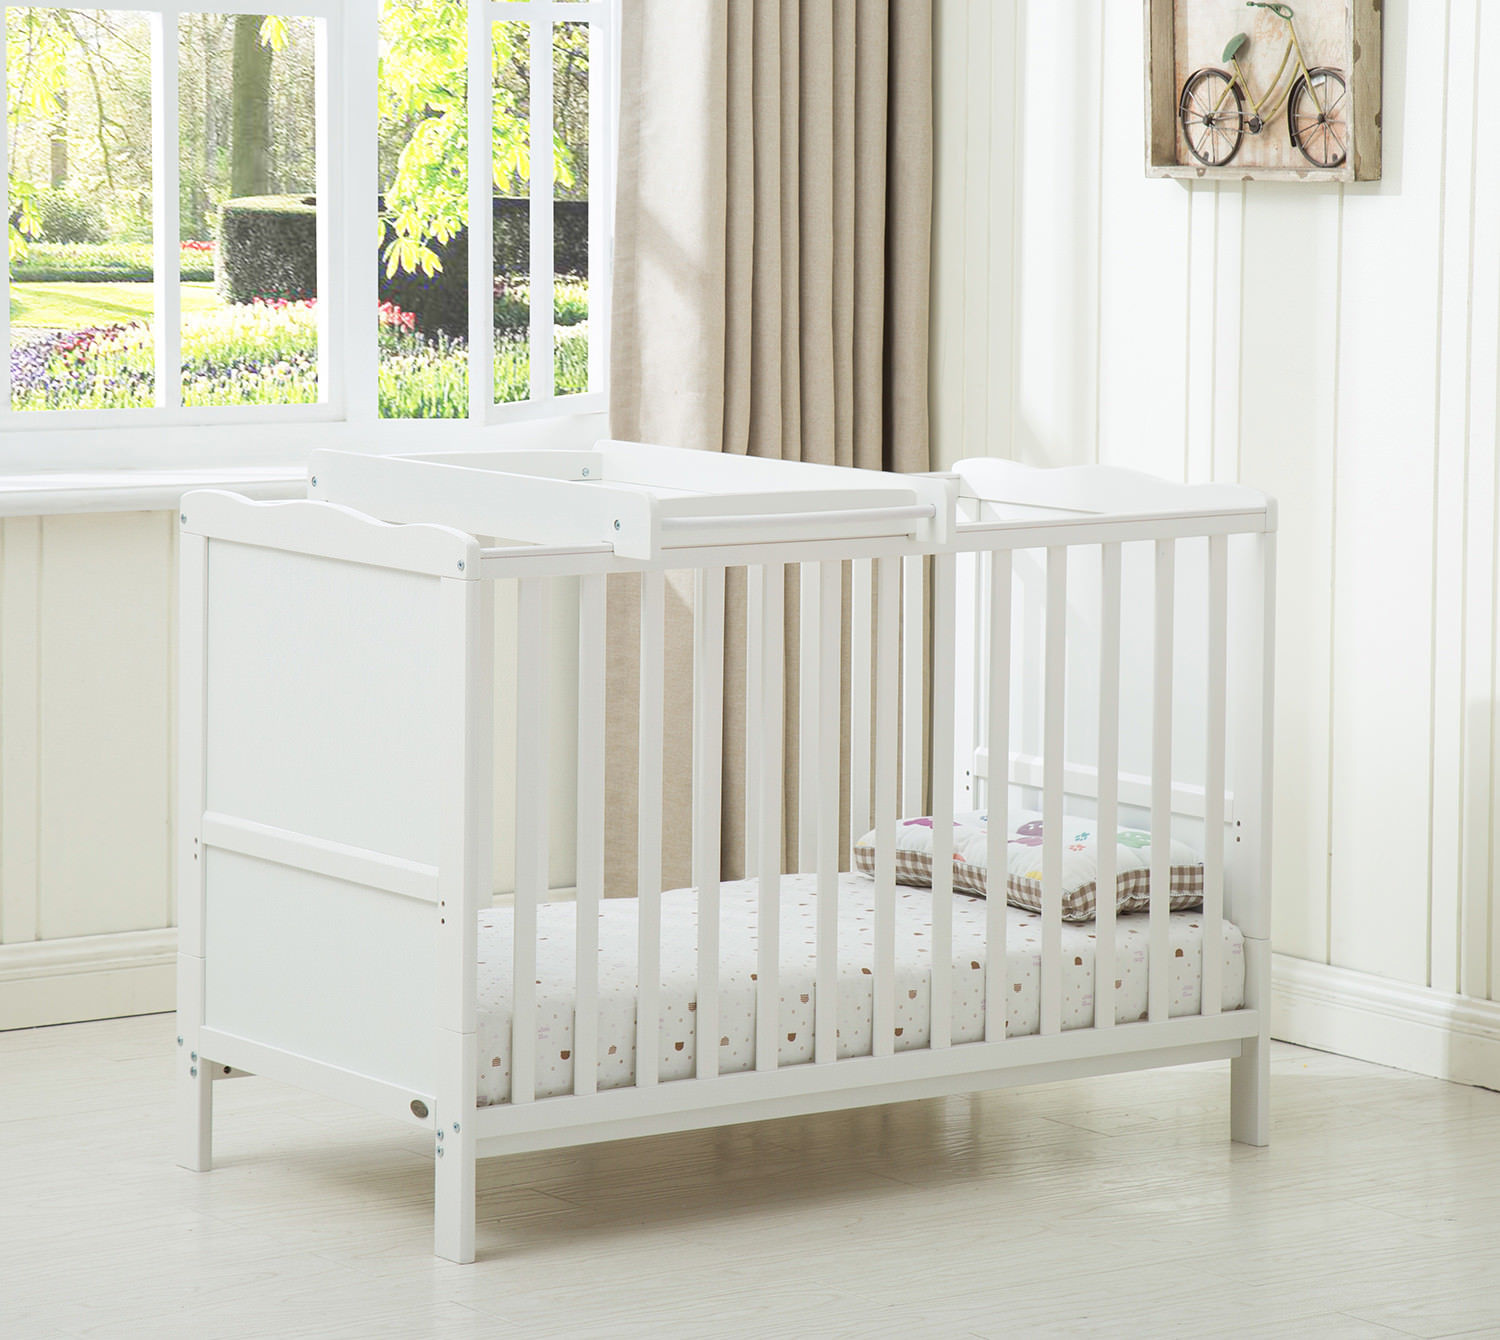 Cot Baby New White Solid Wood Baby Cot Bed With Top Changer And